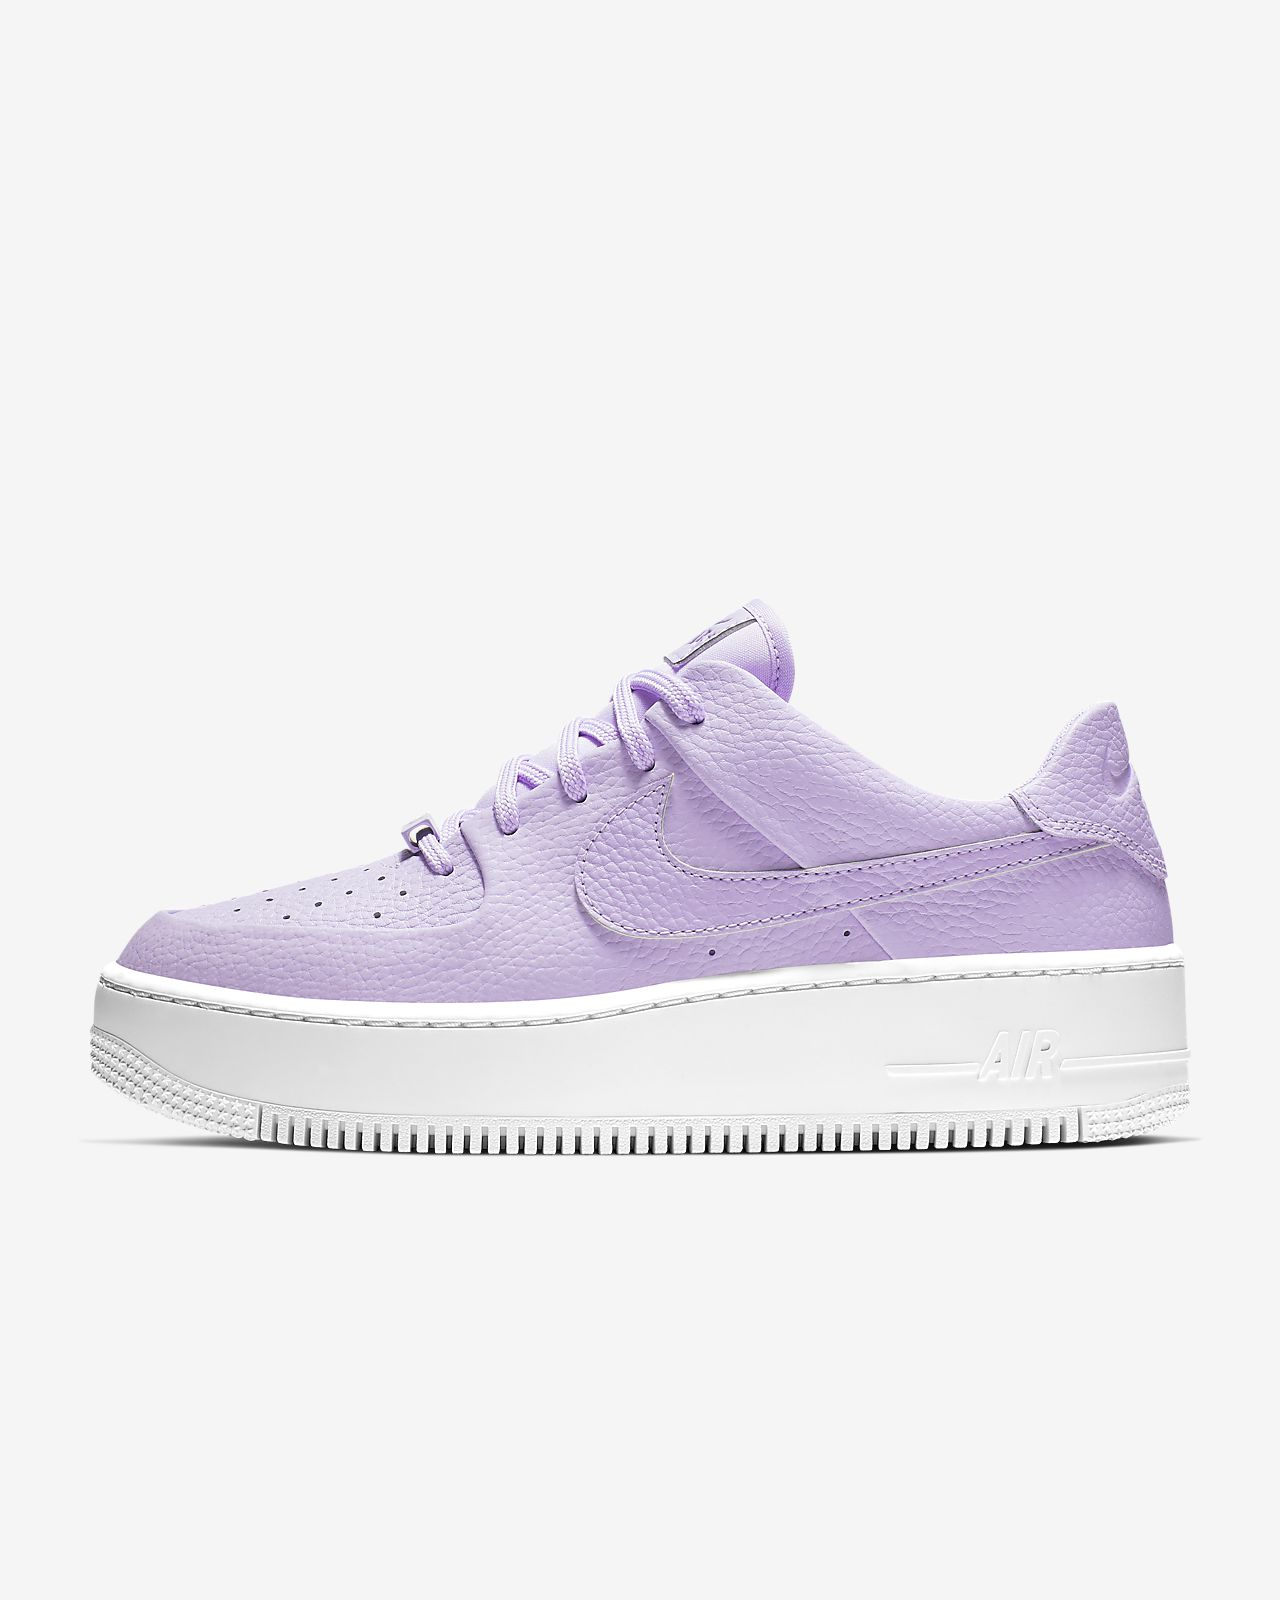 timeless design c290e c3593 ... Skon Nike Air Force 1 Sage Low för kvinnor